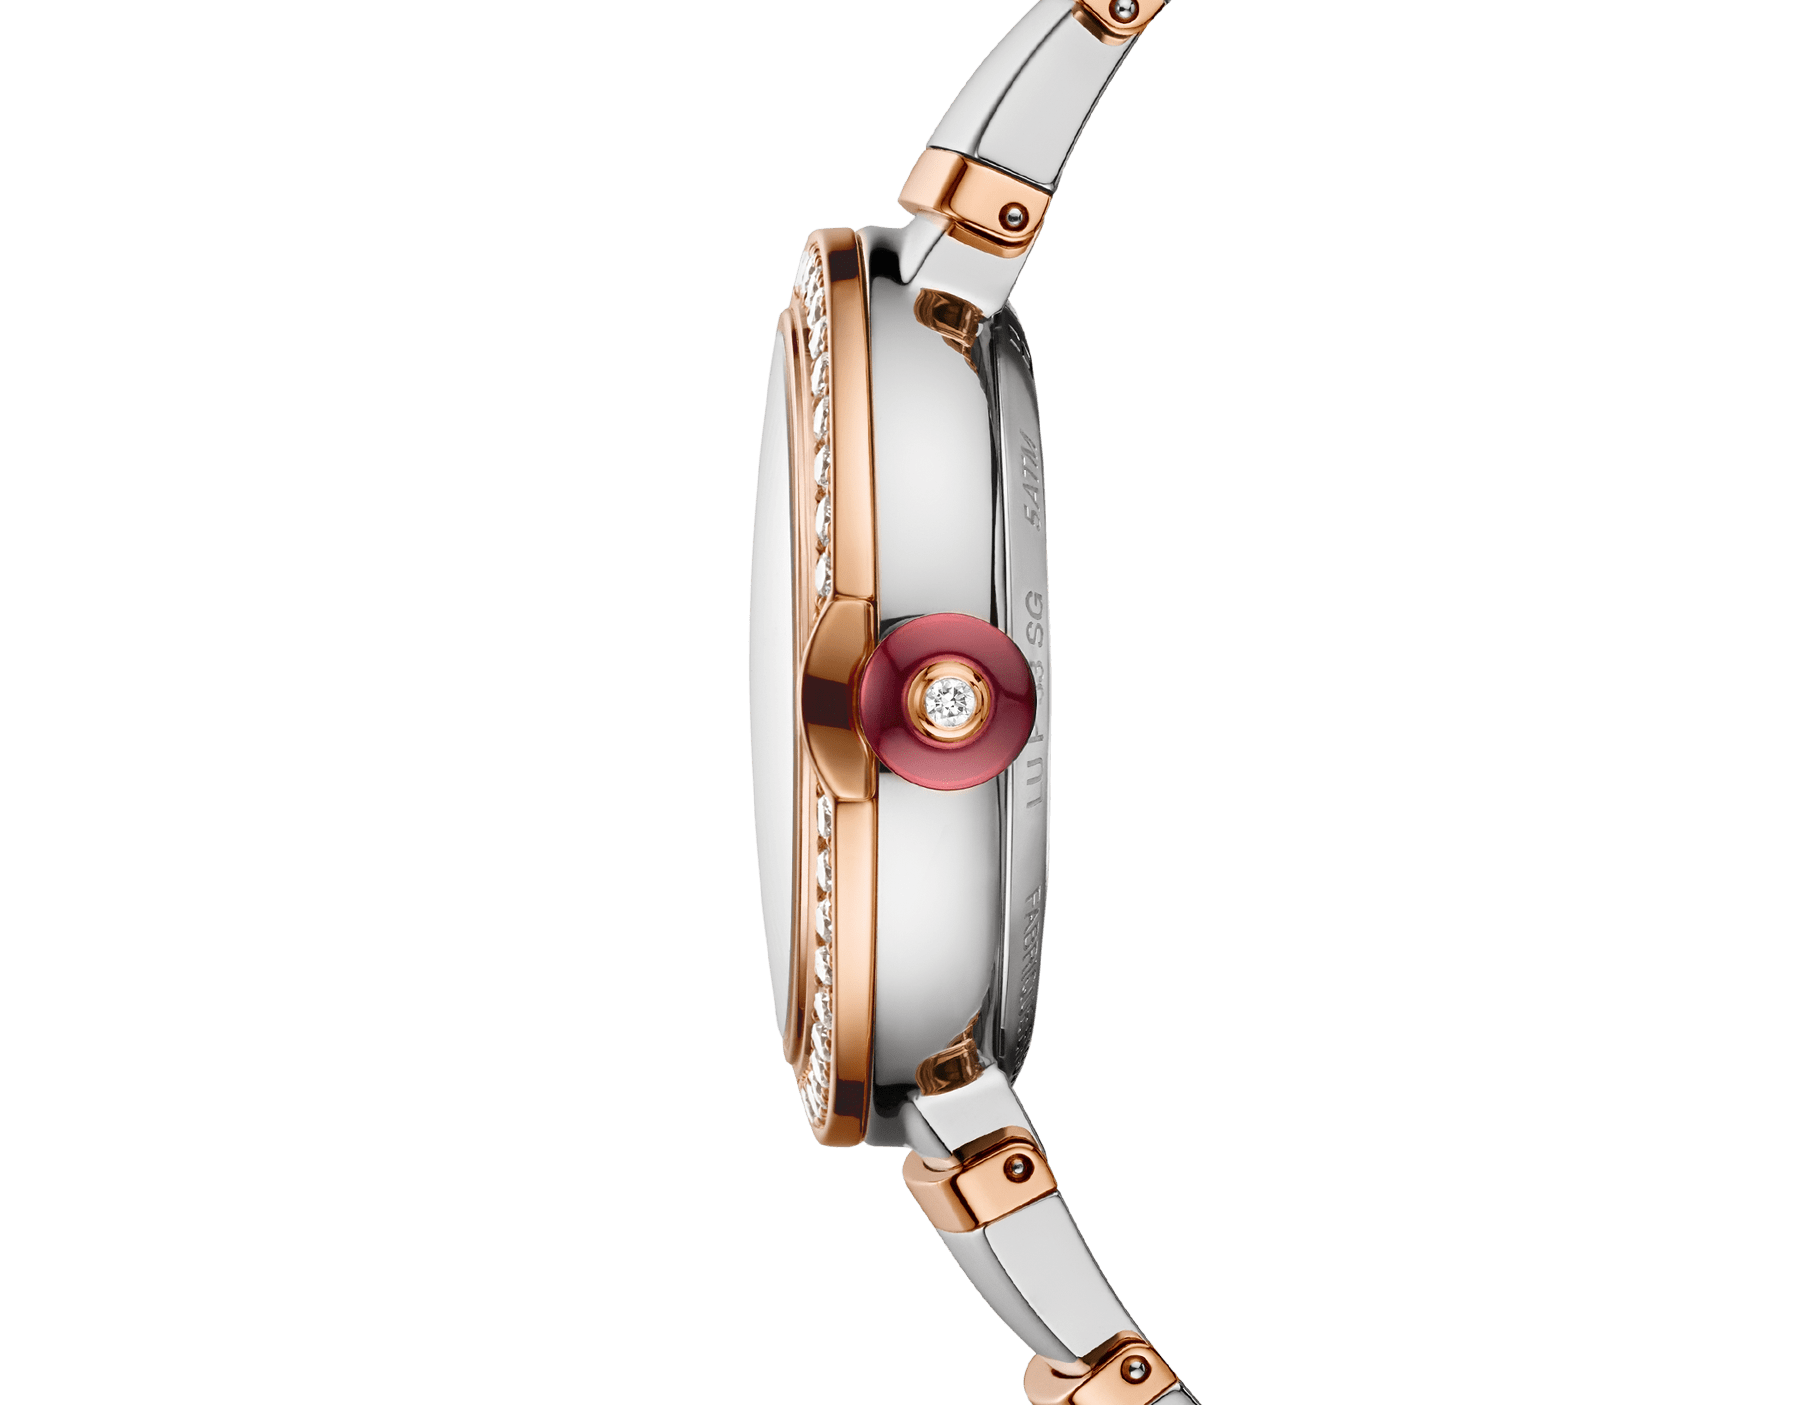 LVCEA watch with stainless steel case, 18 kt rose gold bezel set with diamonds, grey lacquered dial, diamond indexes, stainless steel and 18 kt rose gold bracelet 103029 image 3